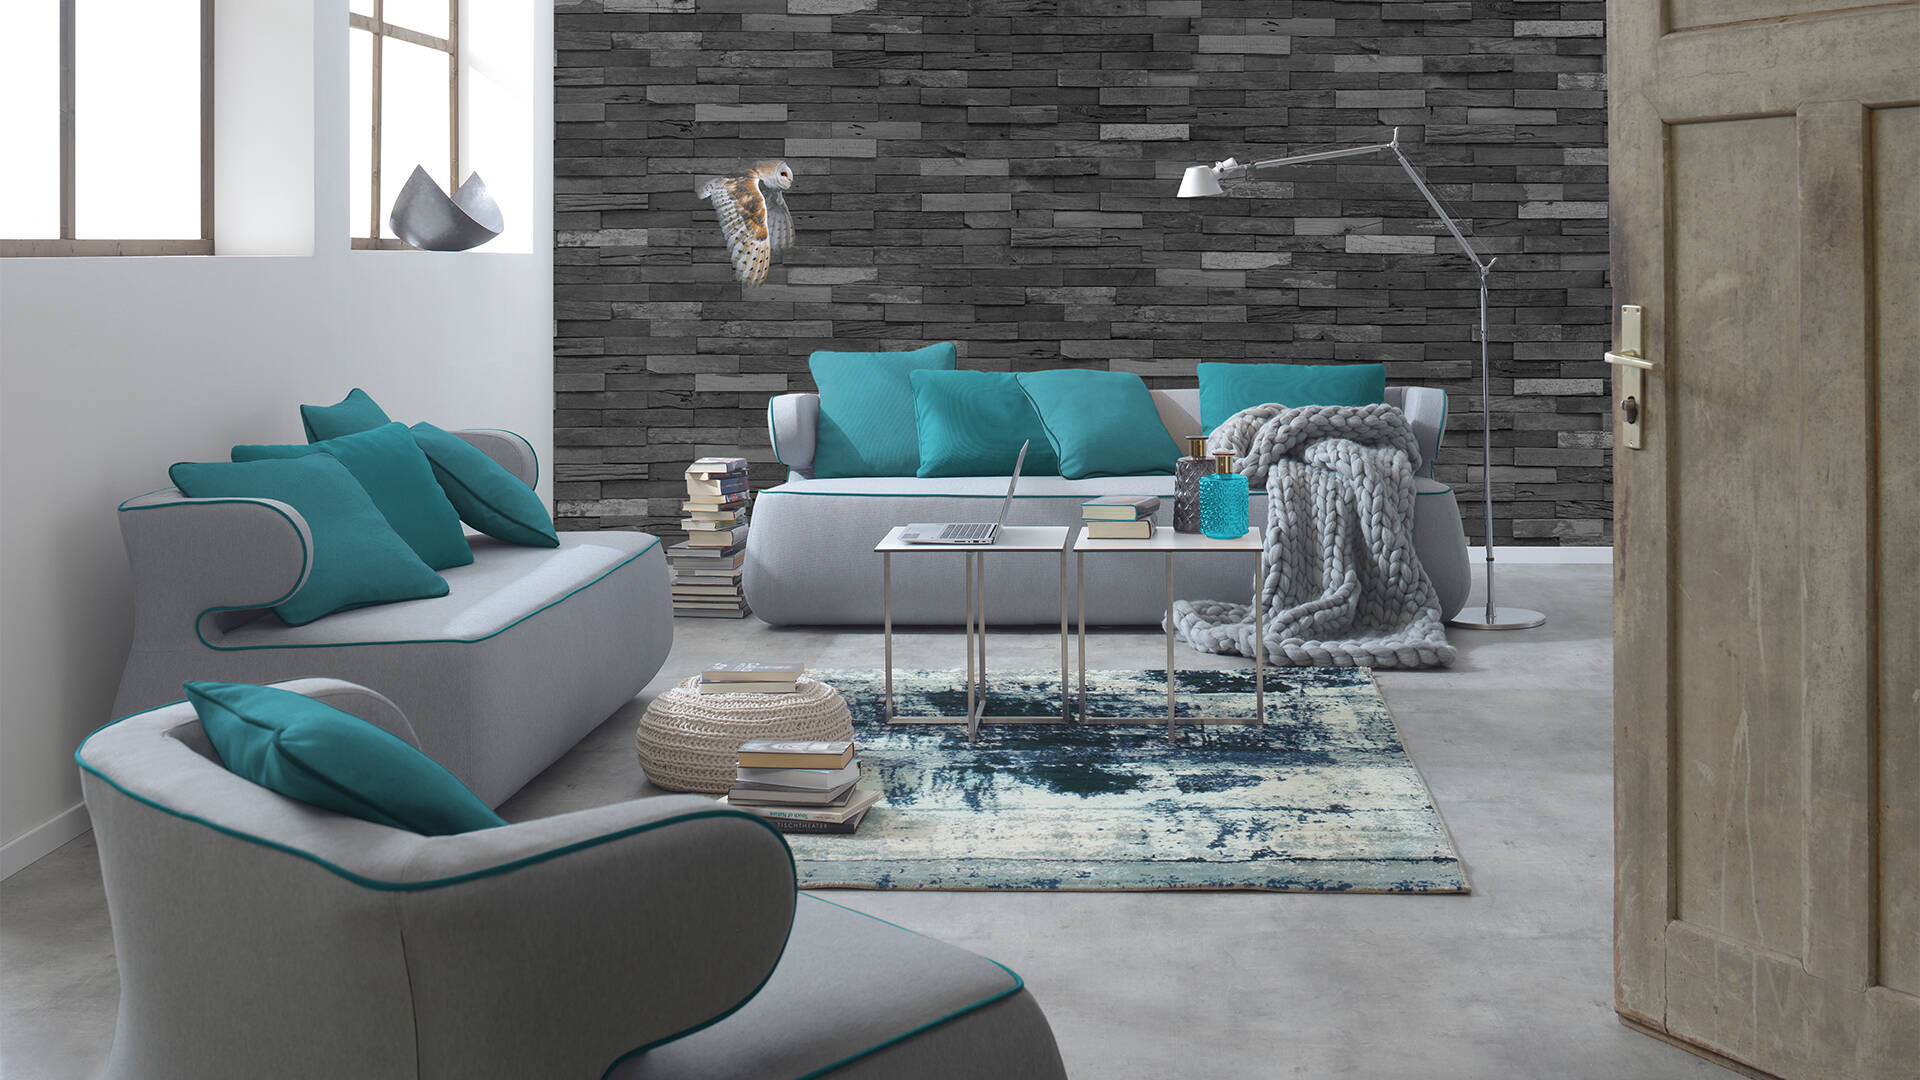 Bonny is ideal for a chill areas in a modern open space / <i>Bonny ist ideal für eine Chill-Area in einem modernen Open Space (Design by dietzproduktdesign)</i>